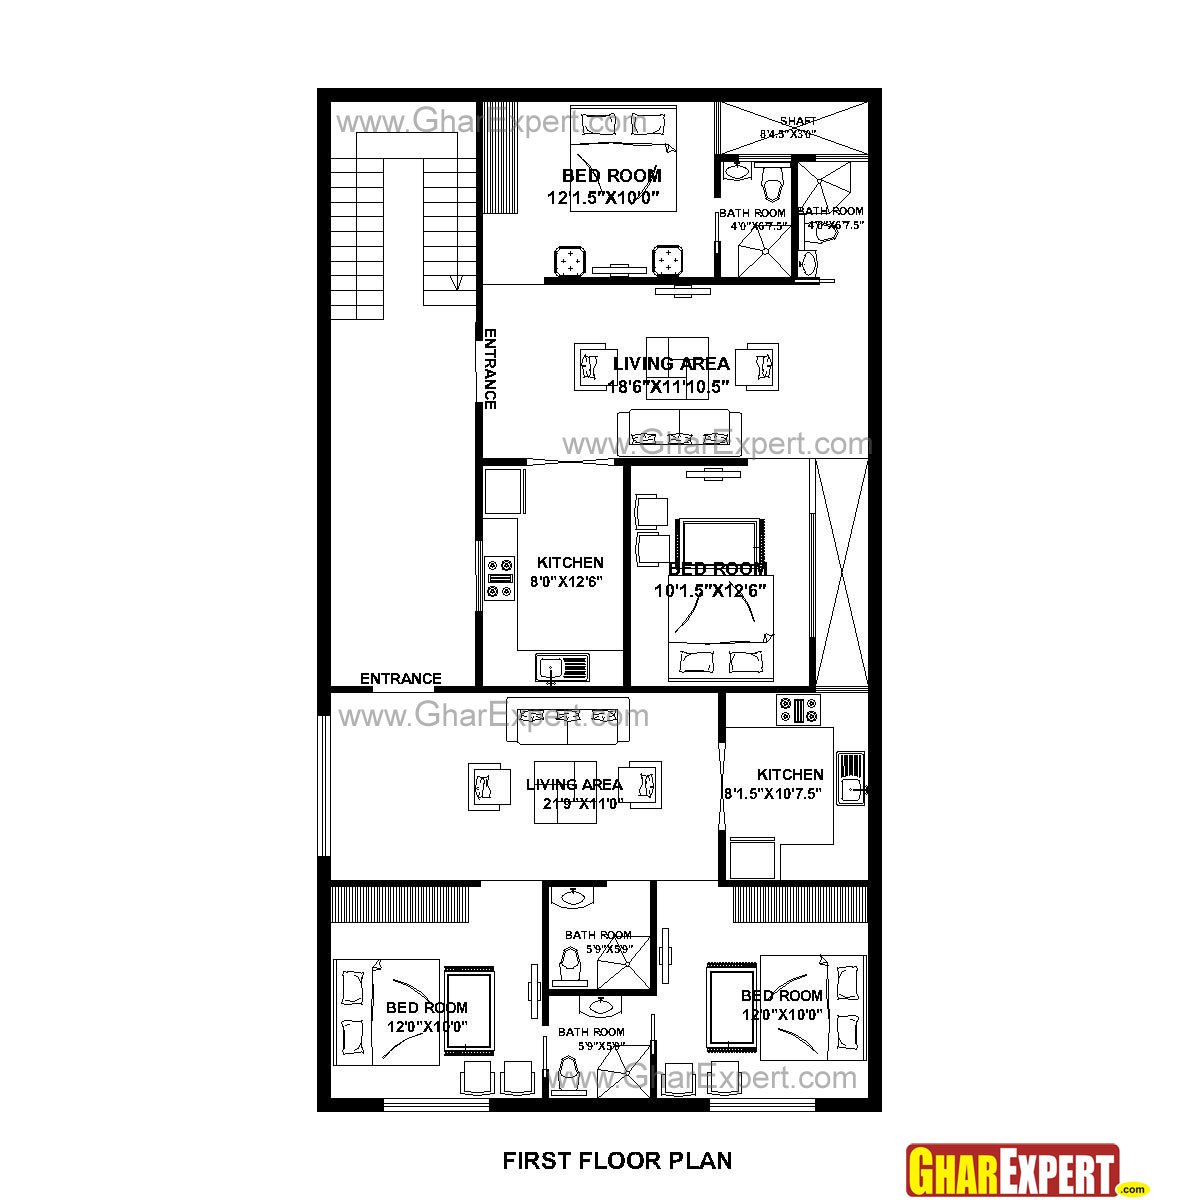 house plan for 32 feet by 58 feet plot plot size 206 square yards - Home Planing